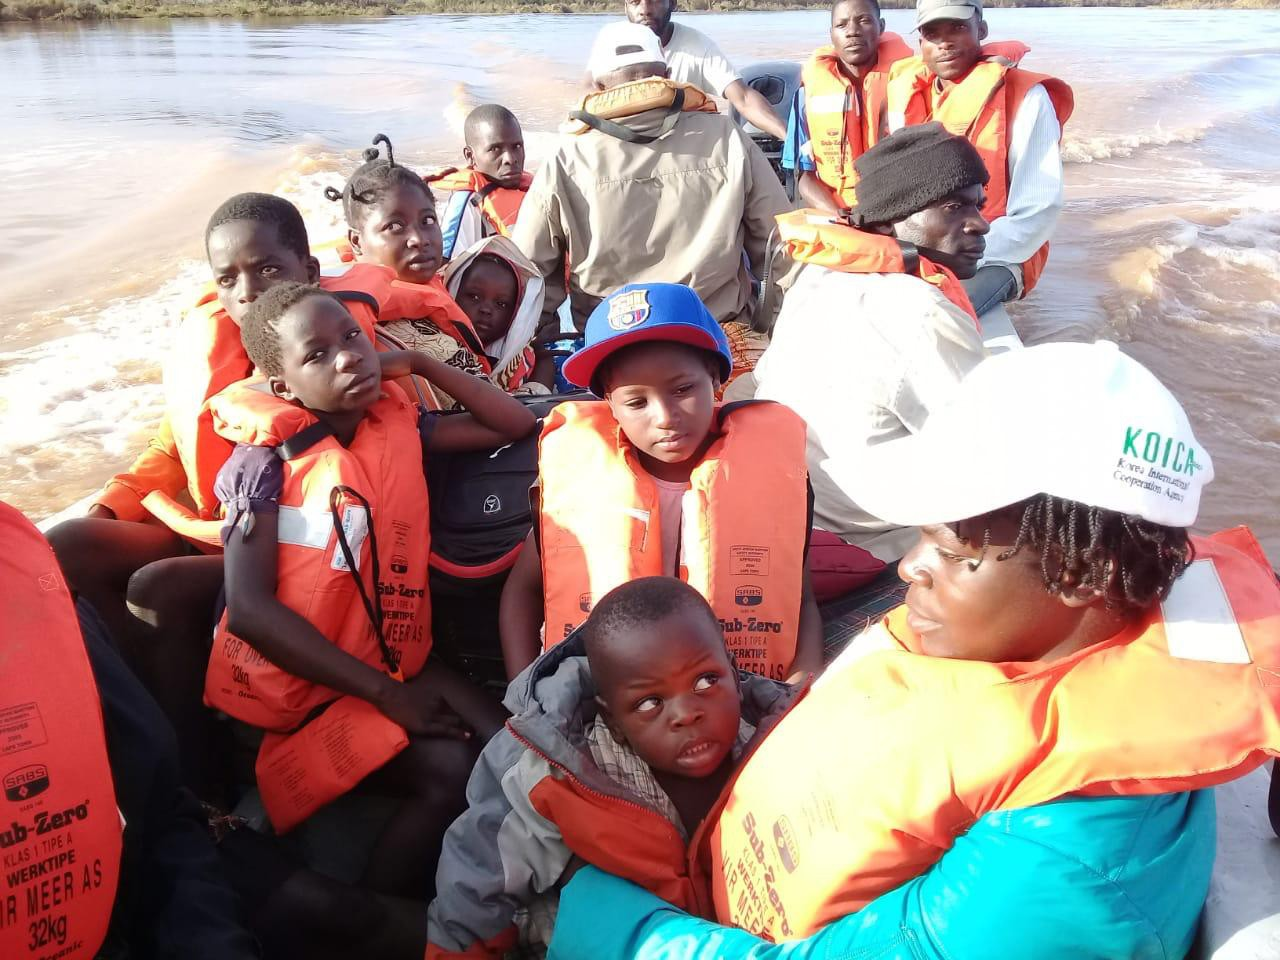 One of our search and rescue boats in Mozambique